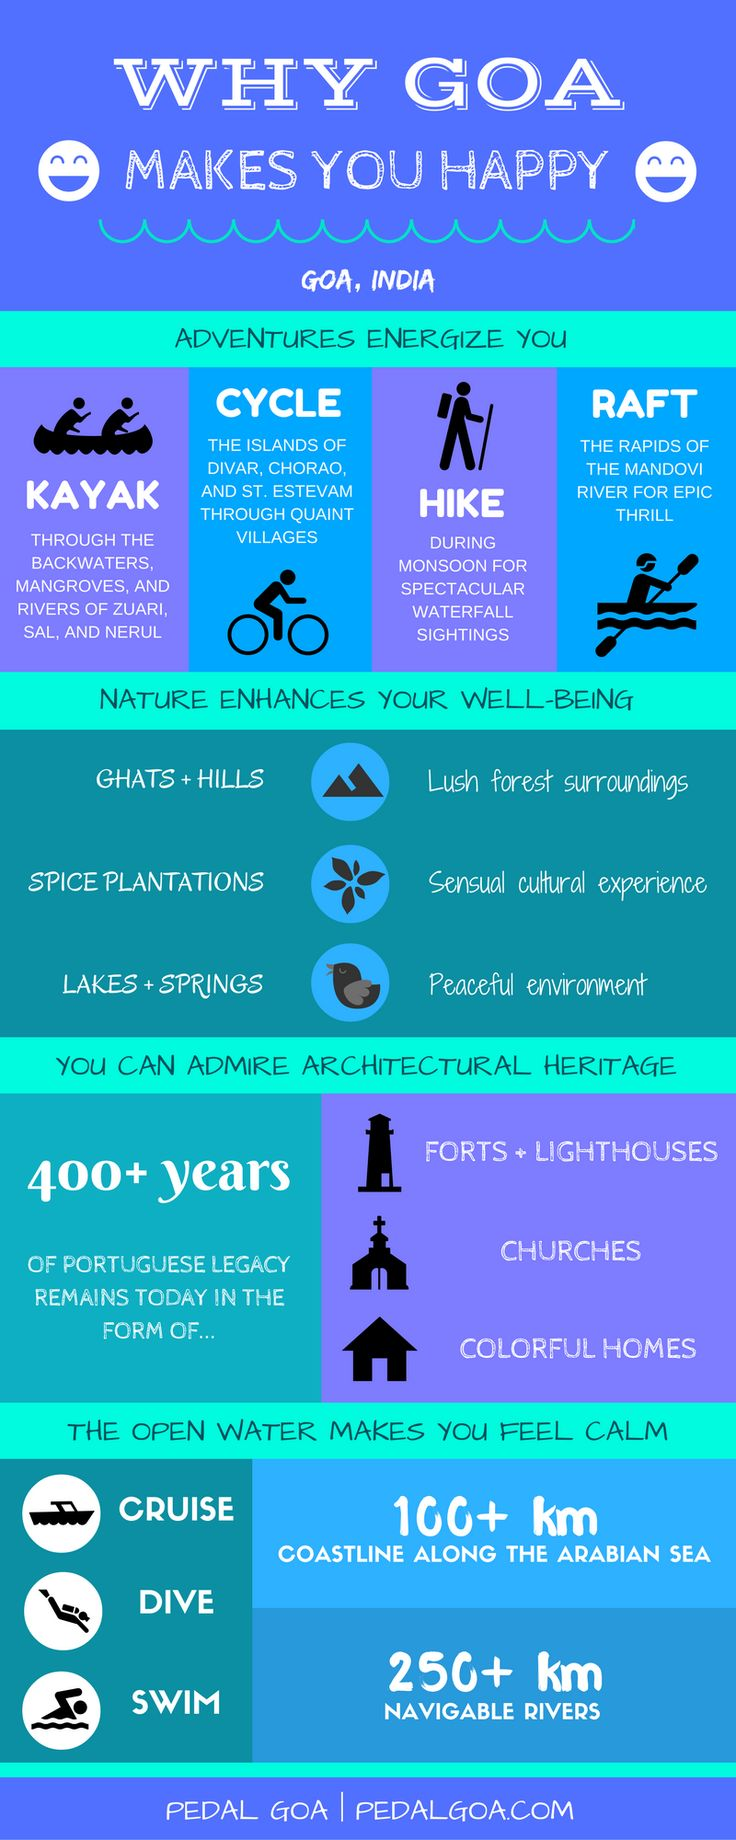 Why Goa makes you happy :) - Open water with cruising, scuba diving, swimming. Adventure sports with kayaking, cycling, hiking, white water rafting. Nature with ghats and hills, spice plantations, lakes and springs. Portuguese legacy through architectural heritage with forts, lighthouses, churches, houses. Goa, India. Infographic | Pedal Goa.